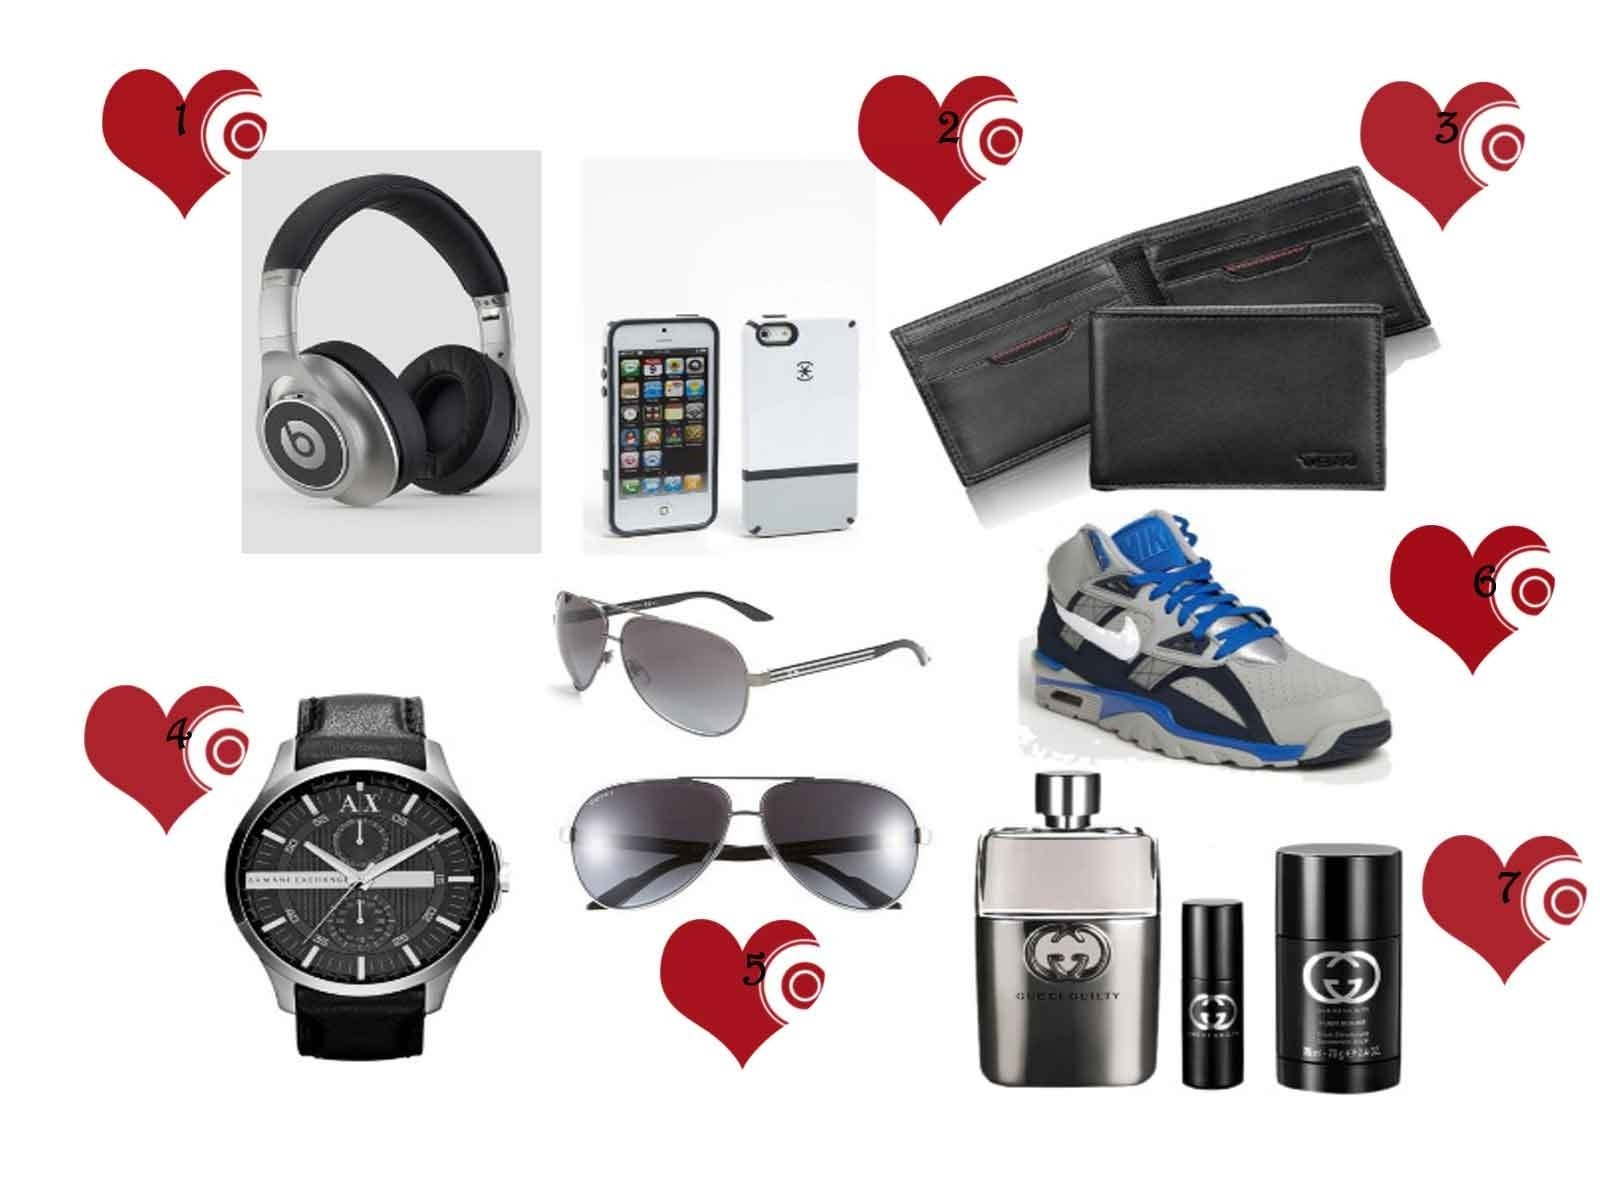 10 Ideal Male Valentines Day Gift Ideas valentines day gift ideas for her and him 2020